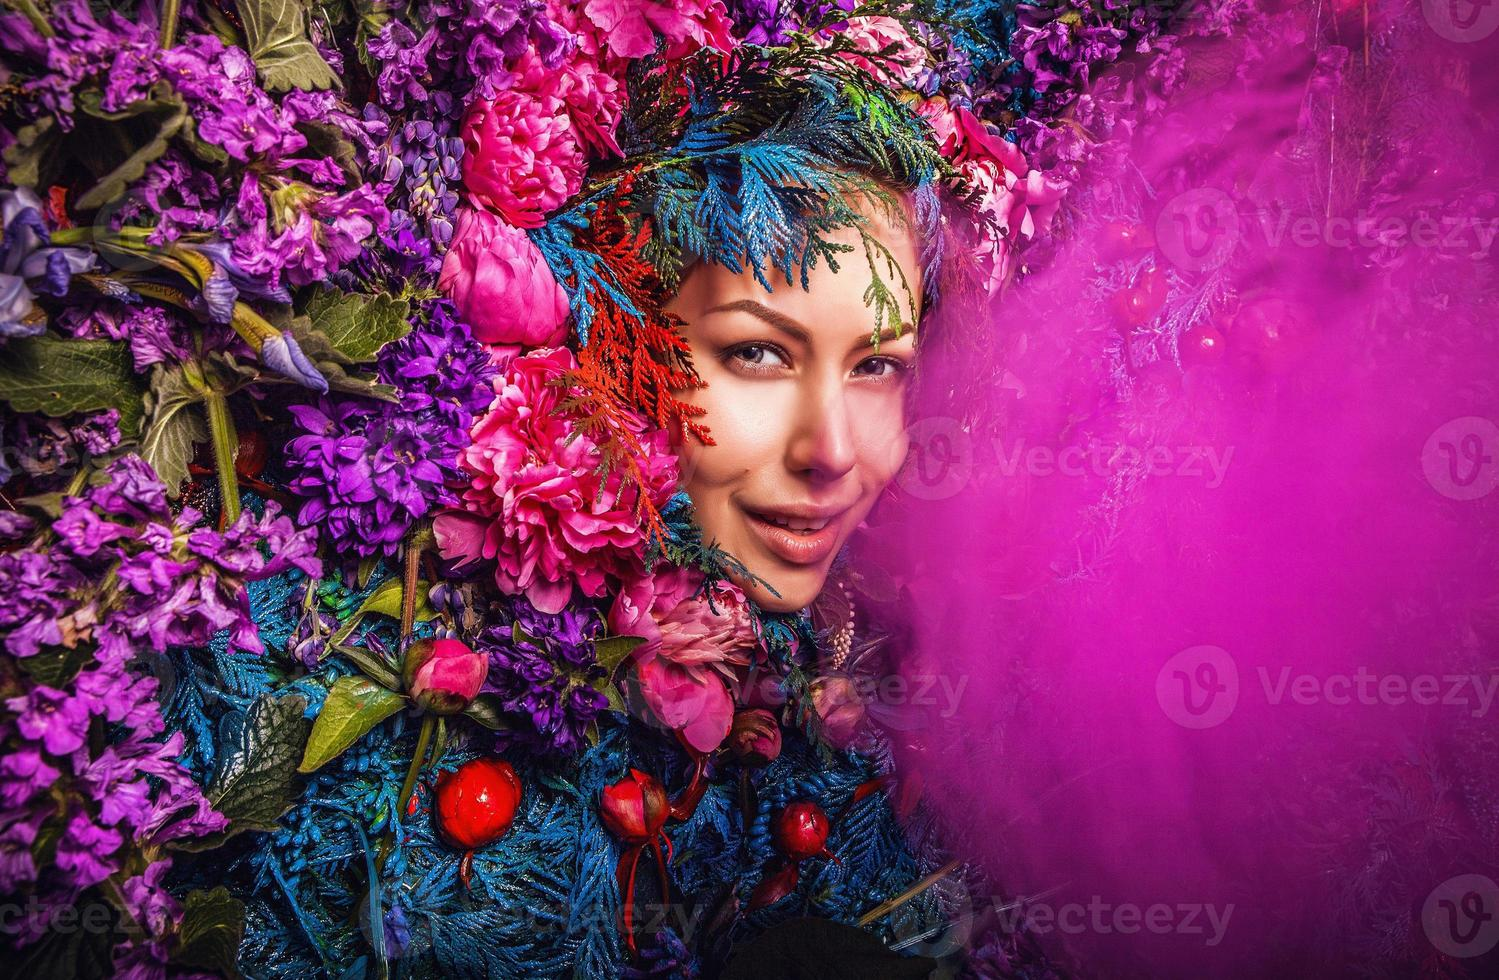 Fairy tale girl portrait surrounded with natural plants and flowers. photo